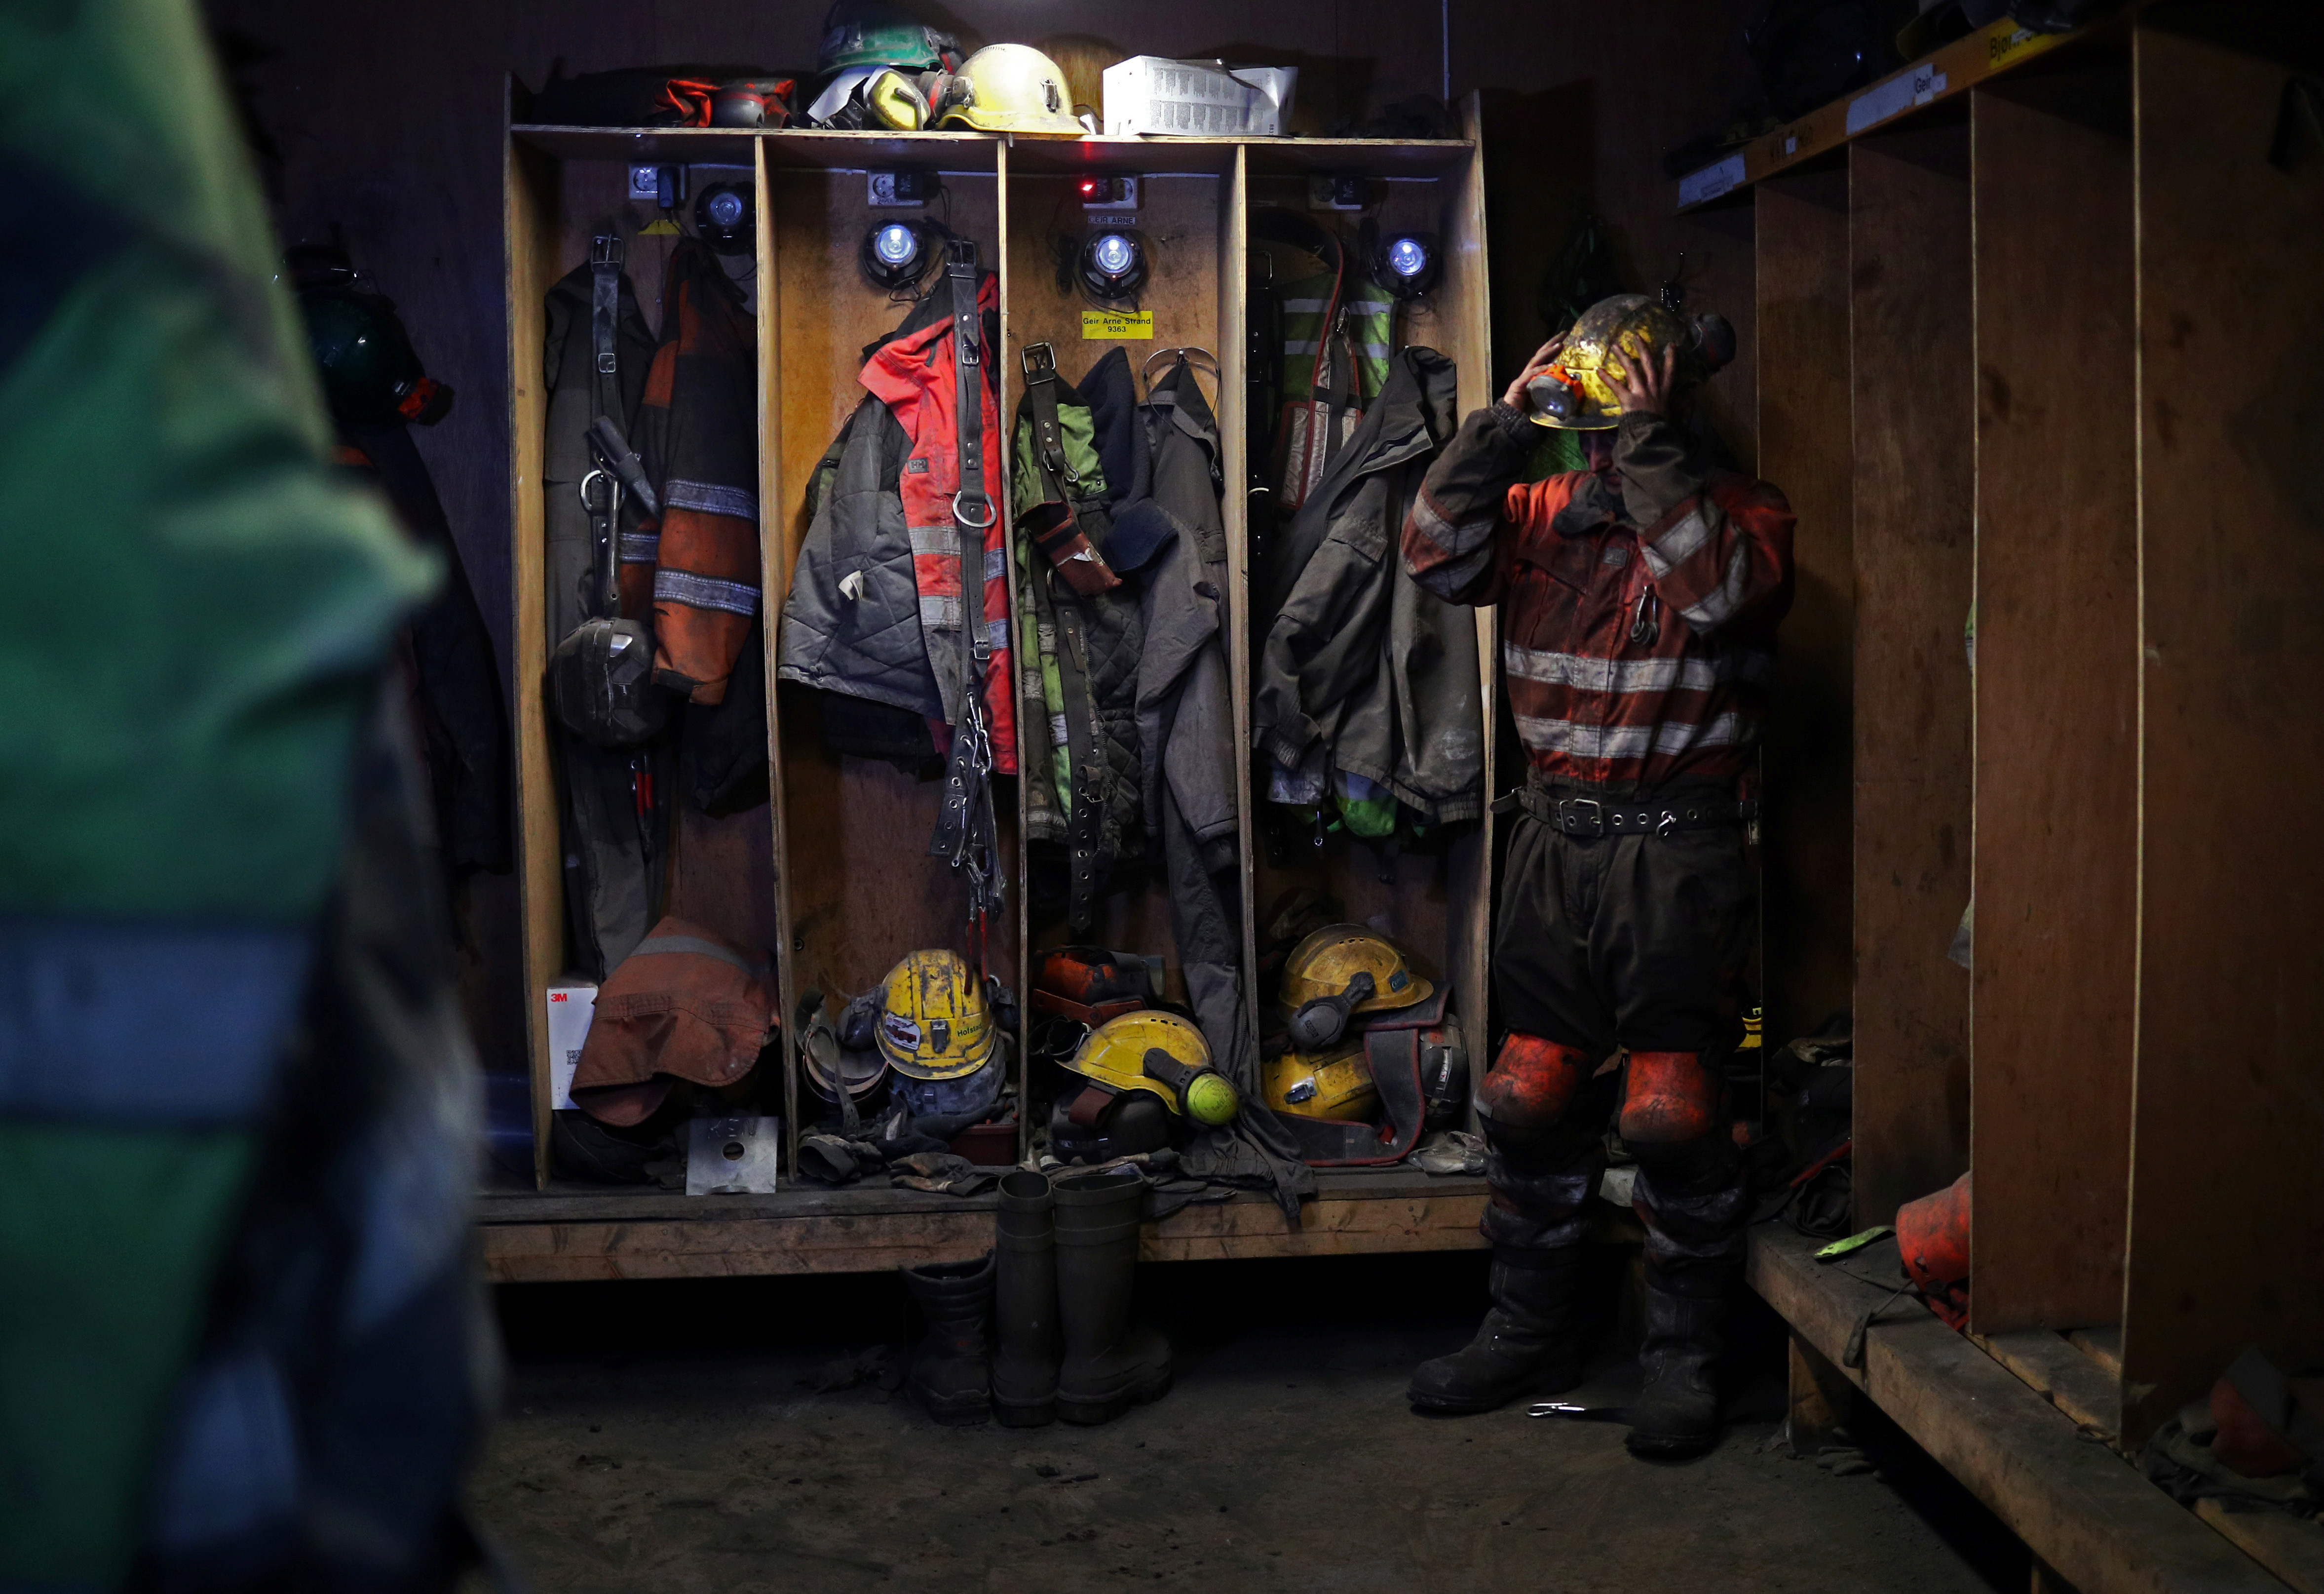 Miner Odd Rune Svenning, 26, changes his clothes after working inside the Gruve 7 mine, the only remaining operational coal mine on Svalbard, Norway, August 7, 2019. Svenning has worked in the mine for two years.